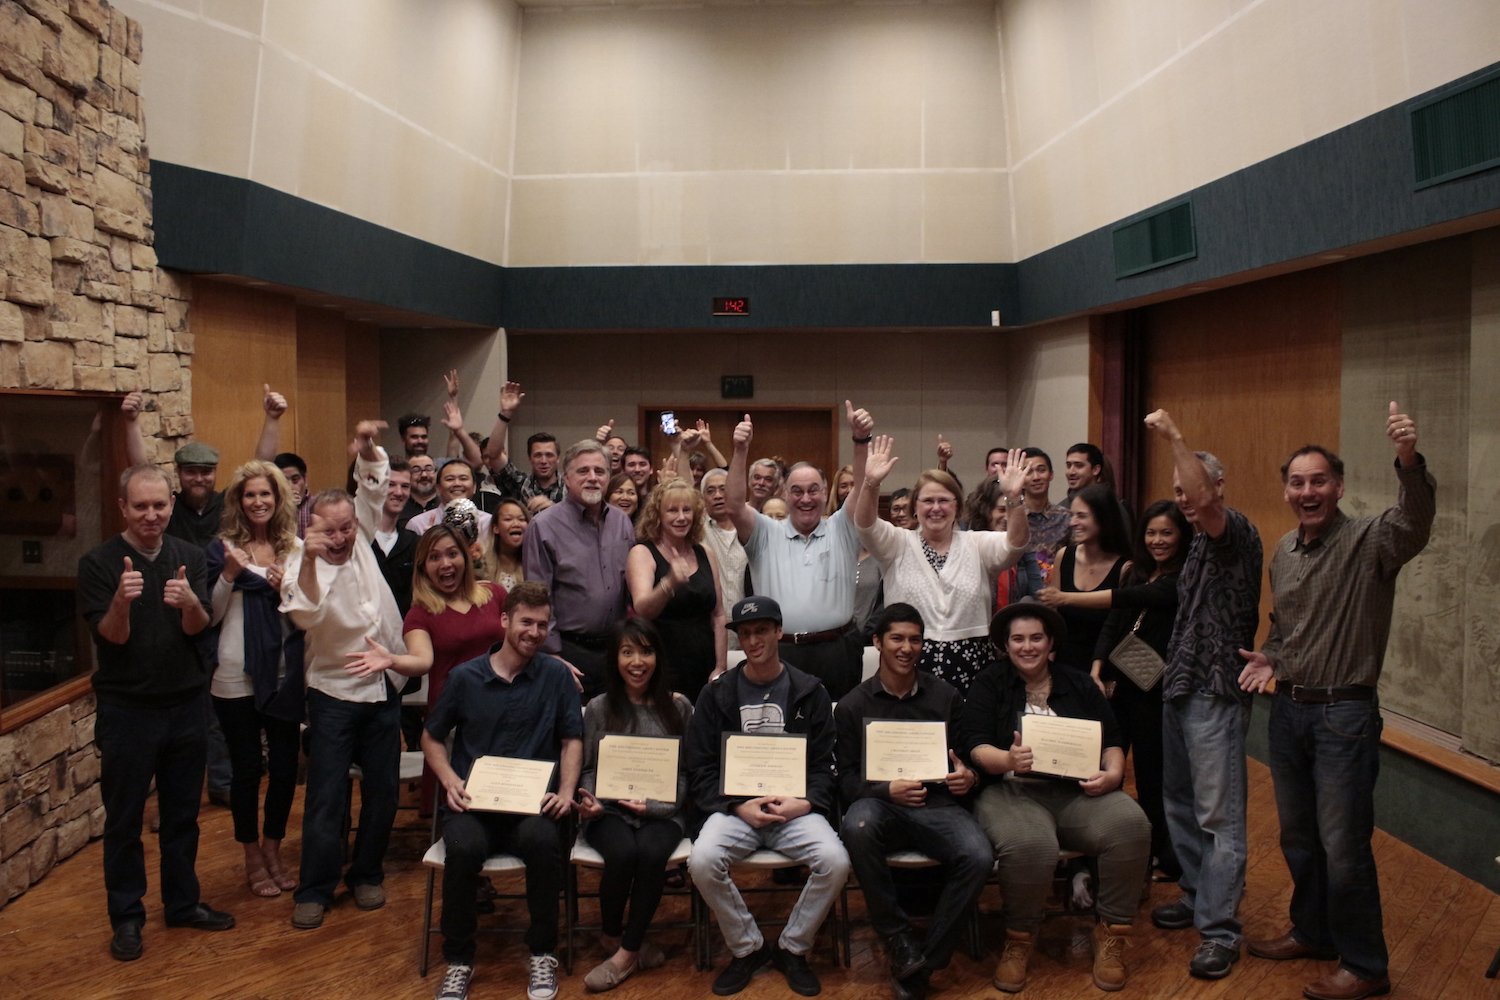 Graduates surrounded by family, friends, and Studio West and The Recording Arts Center staff. Mark Kirchner (far right in photo), former Chief Academic Officer, flew down from the Bay Area for the event.